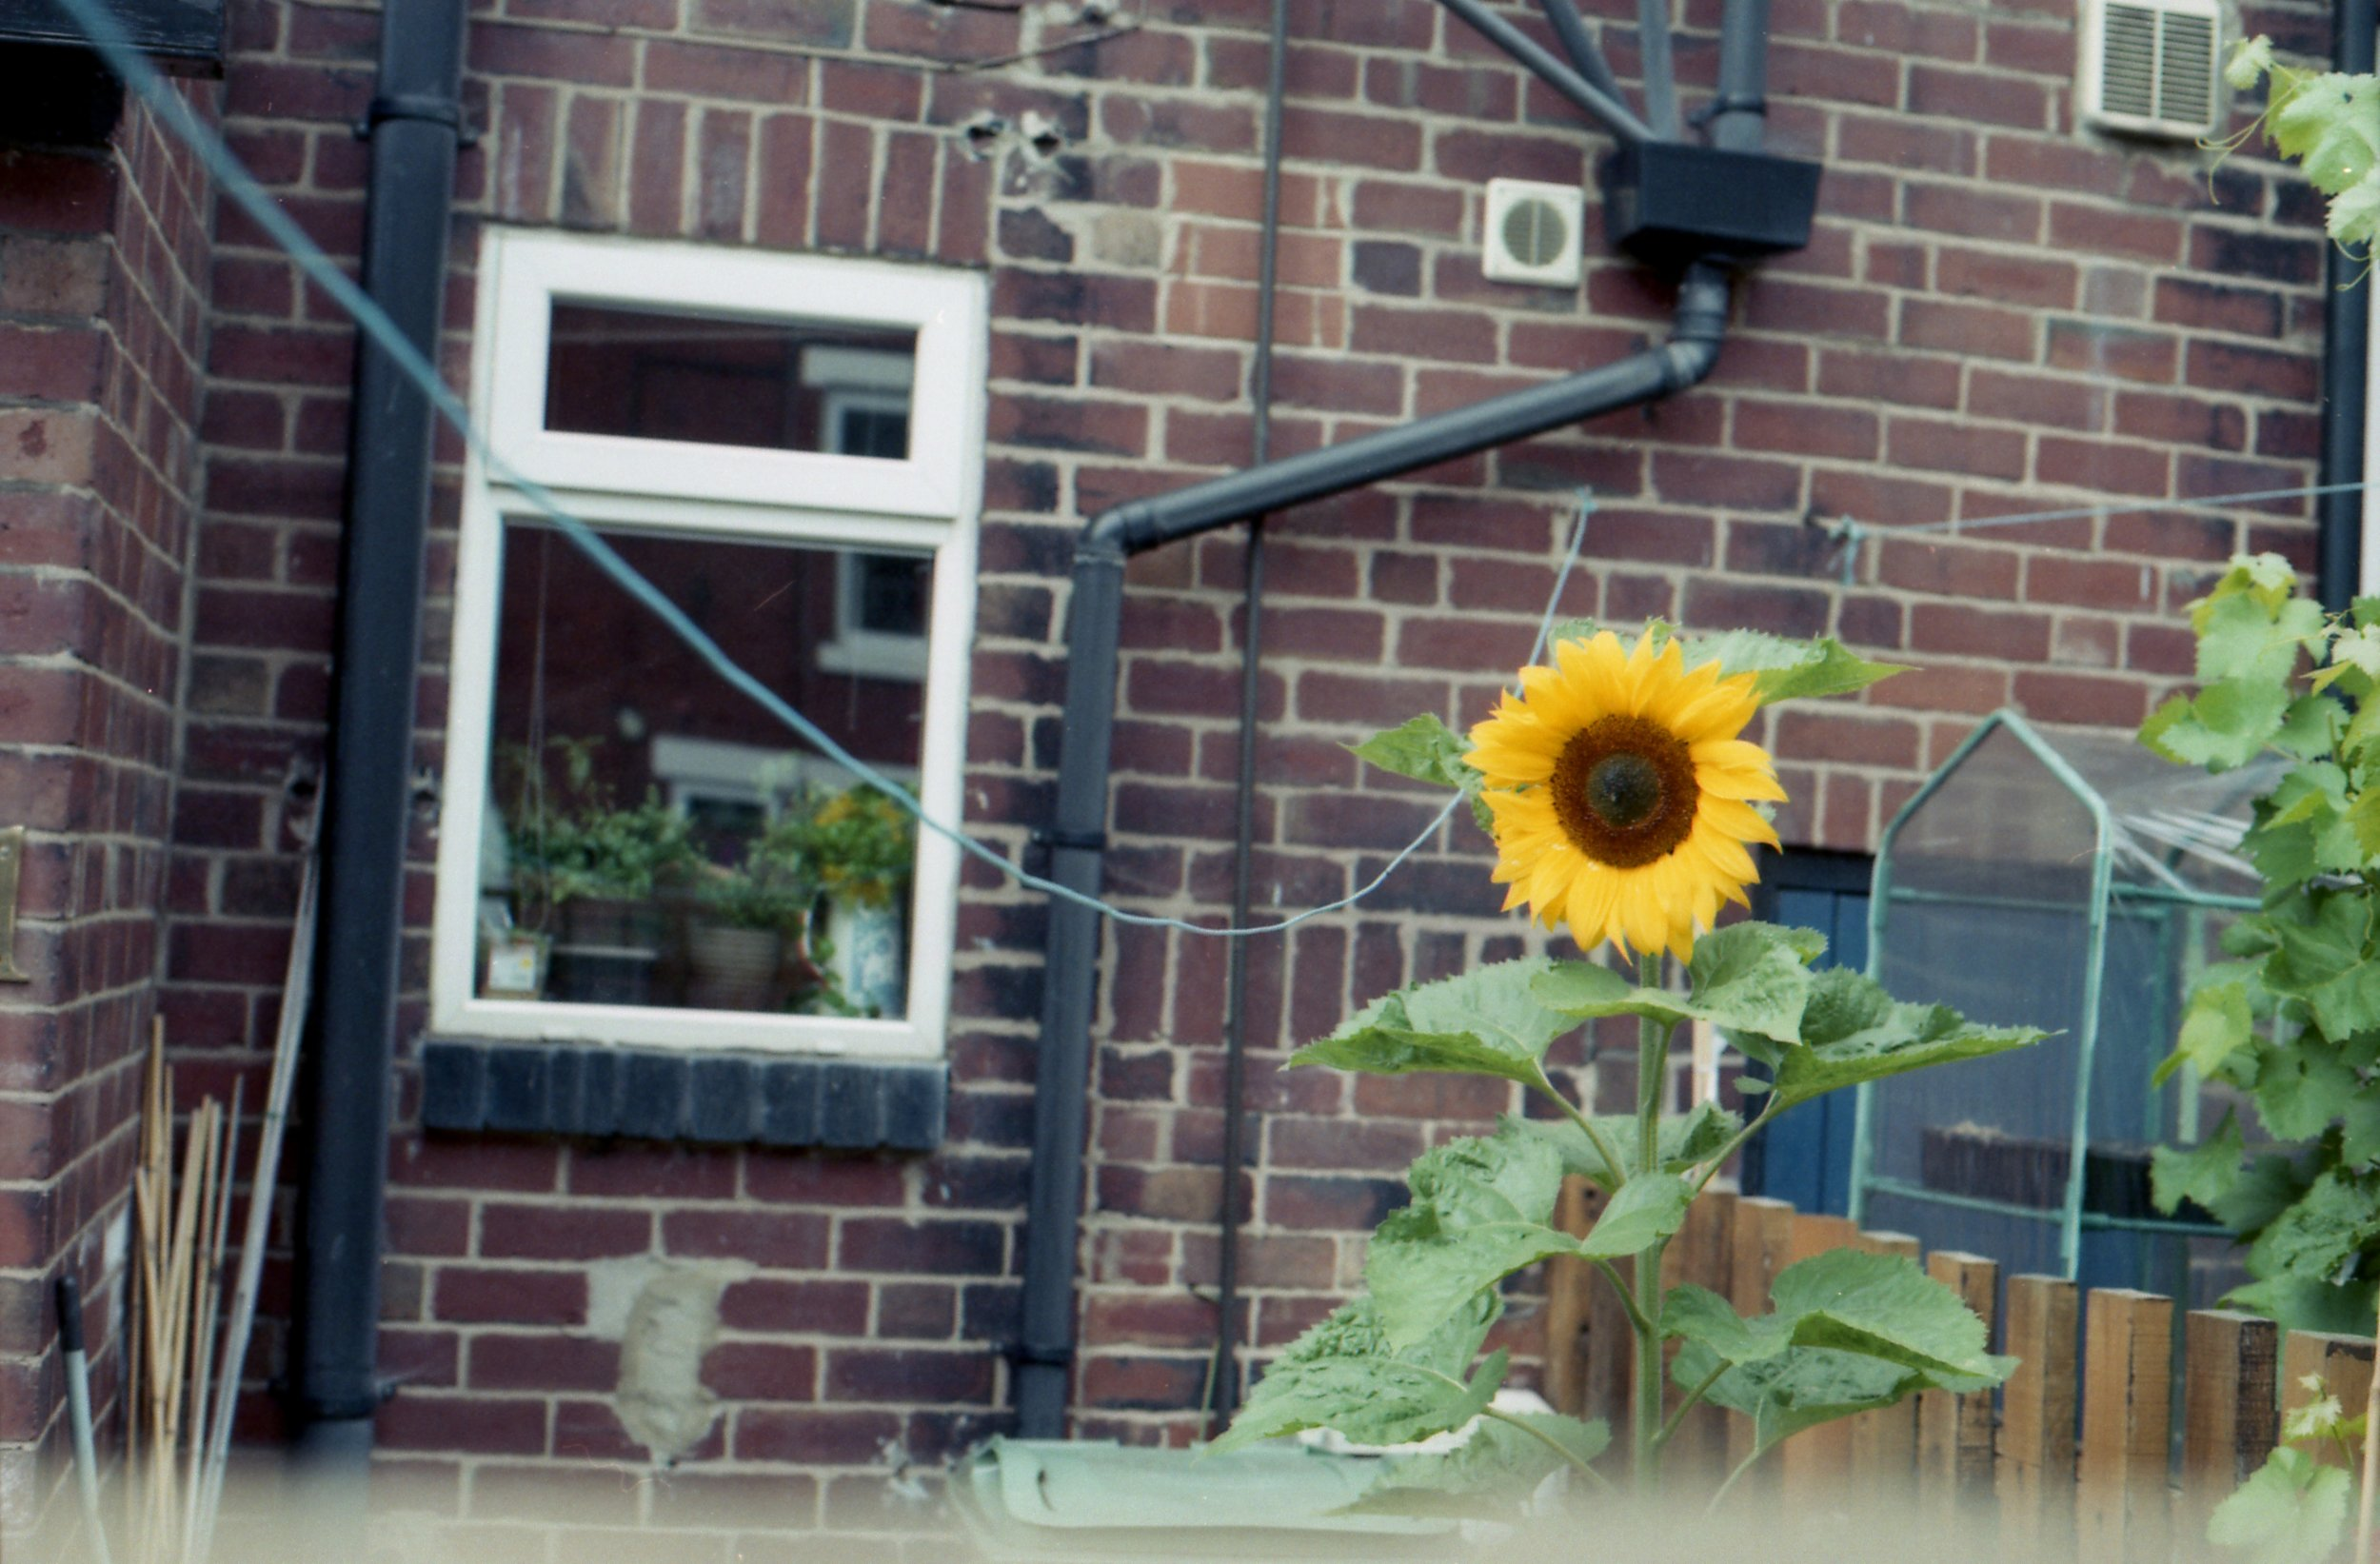 213/366 - A lovely and really quite tall sunflower caught my eye.